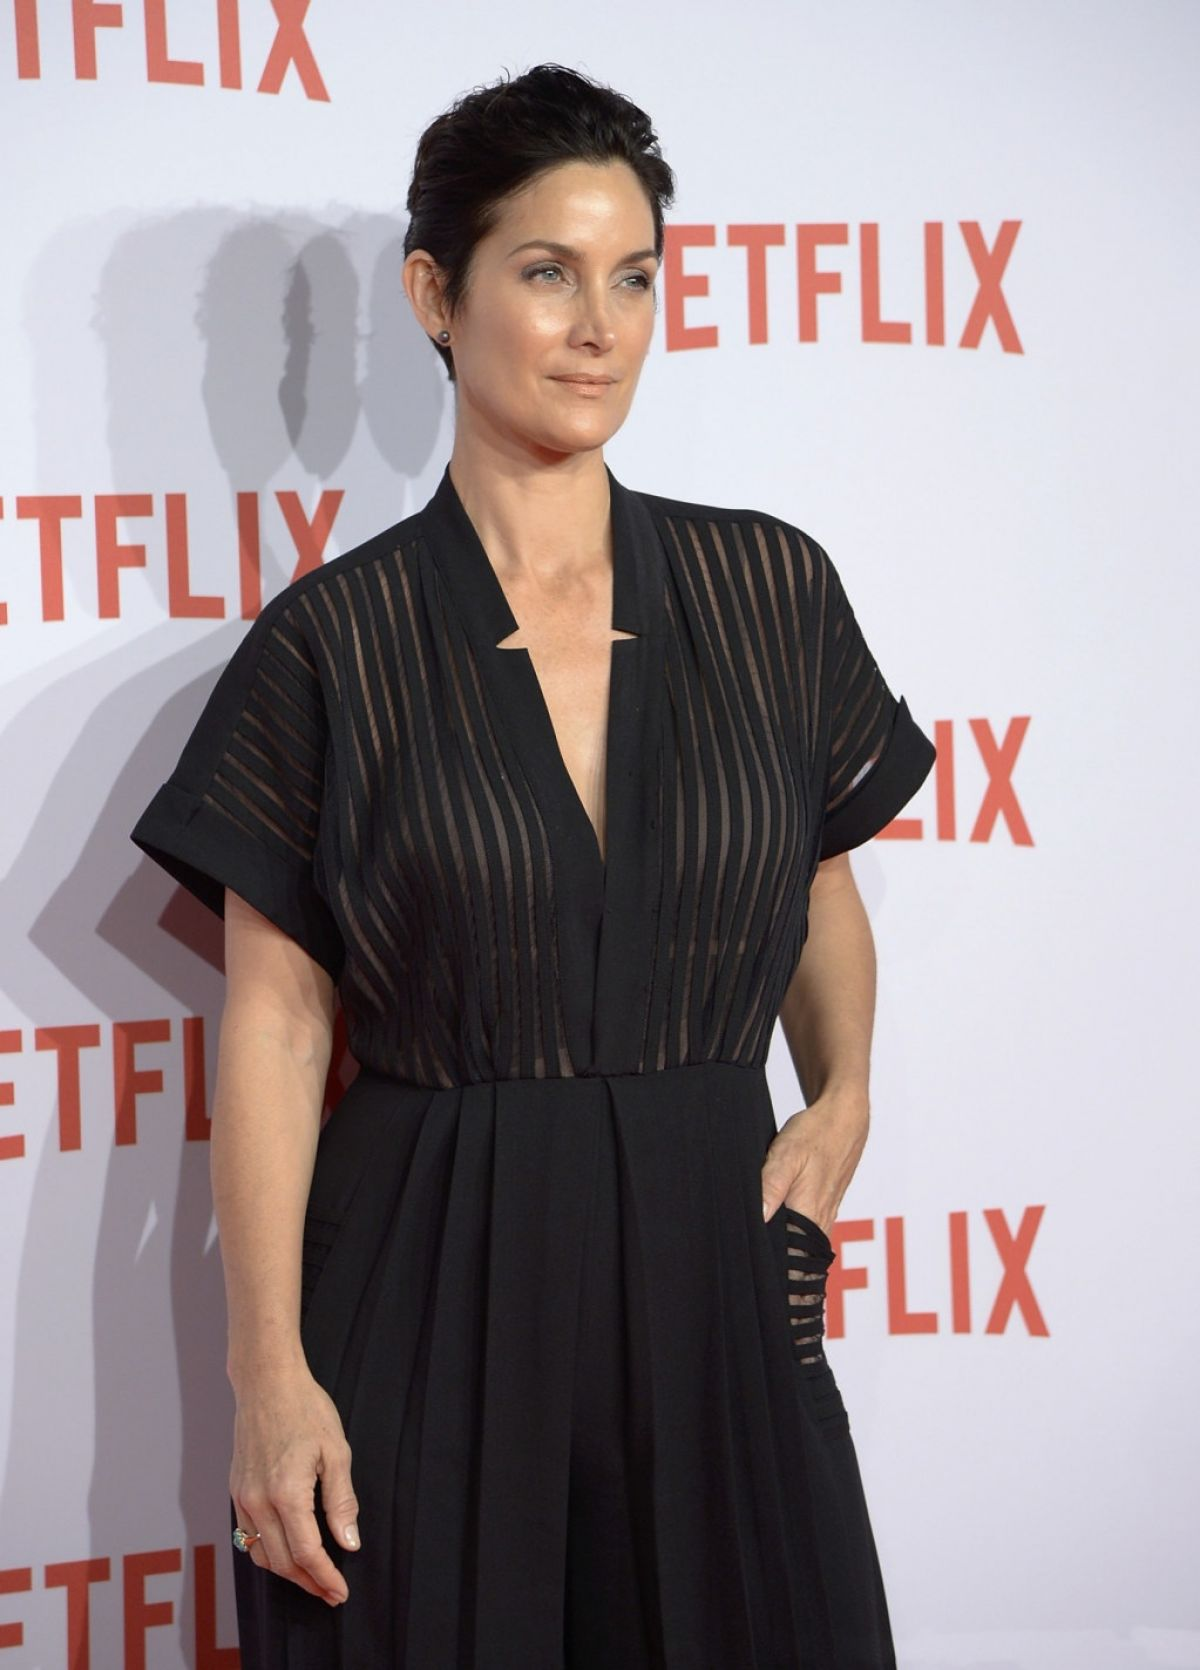 CARRIE-ANNE MOSS at Netflix at Netflix Spain's Presentation in Madrid 10/20/2015